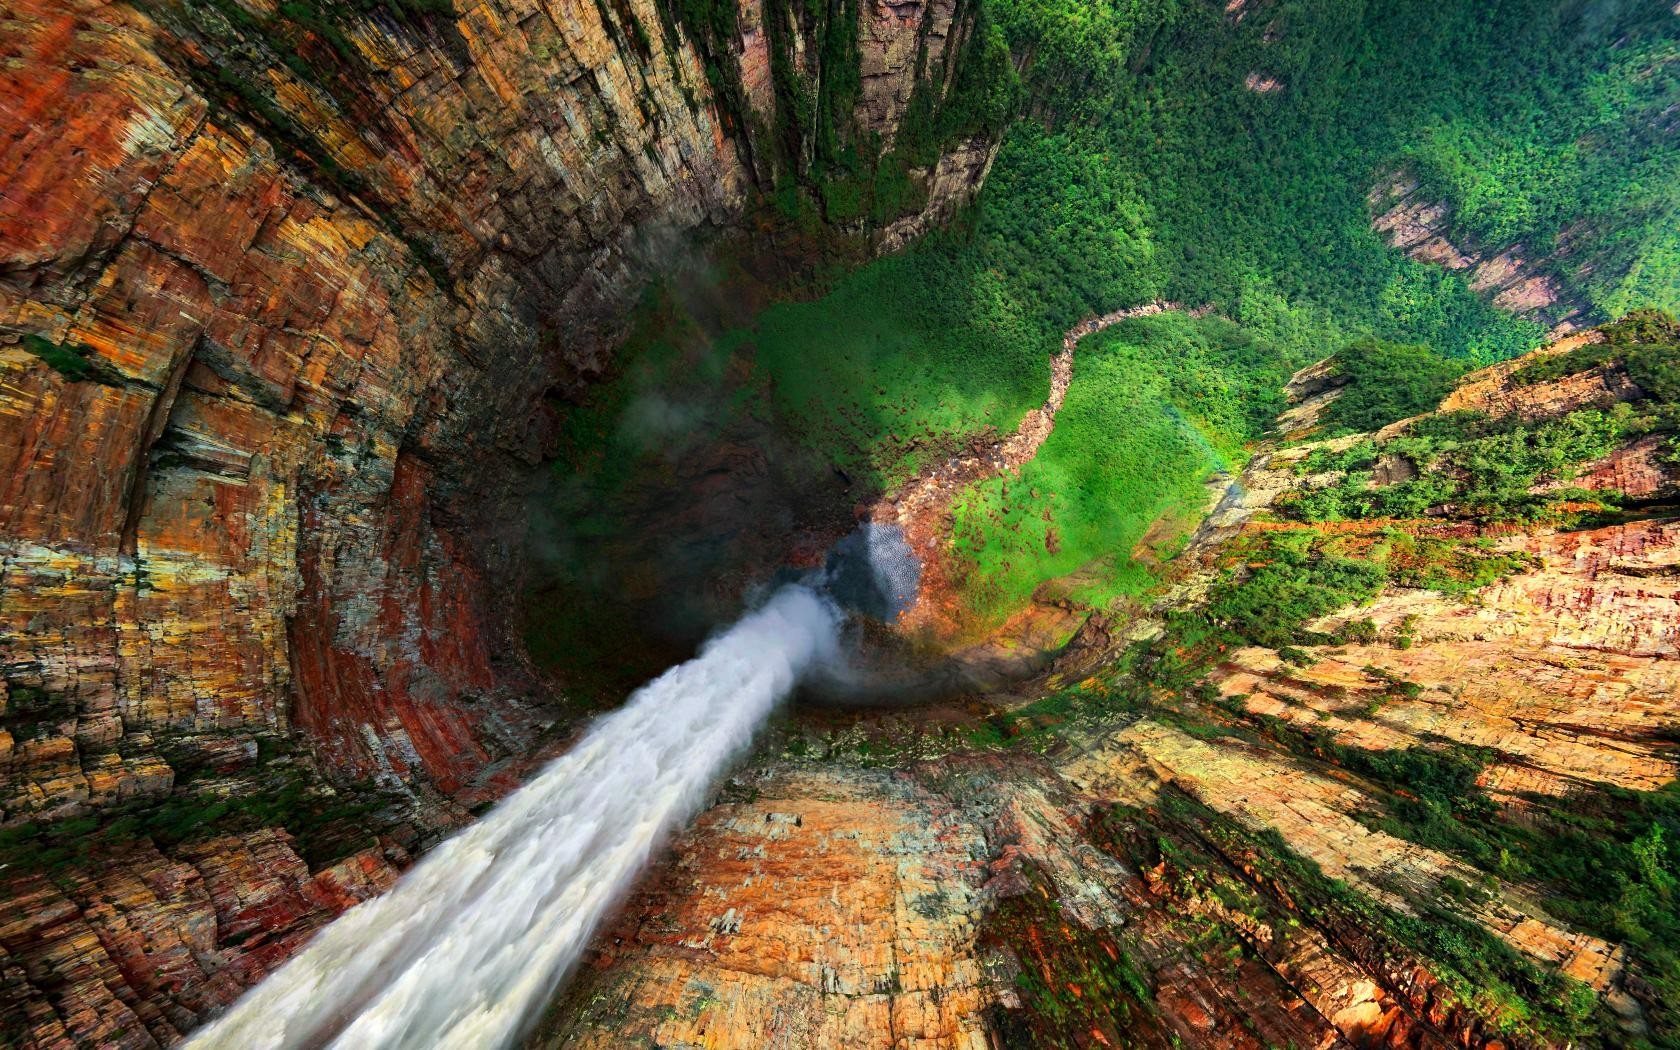 41 photos of the world's most spectacular waterfalls